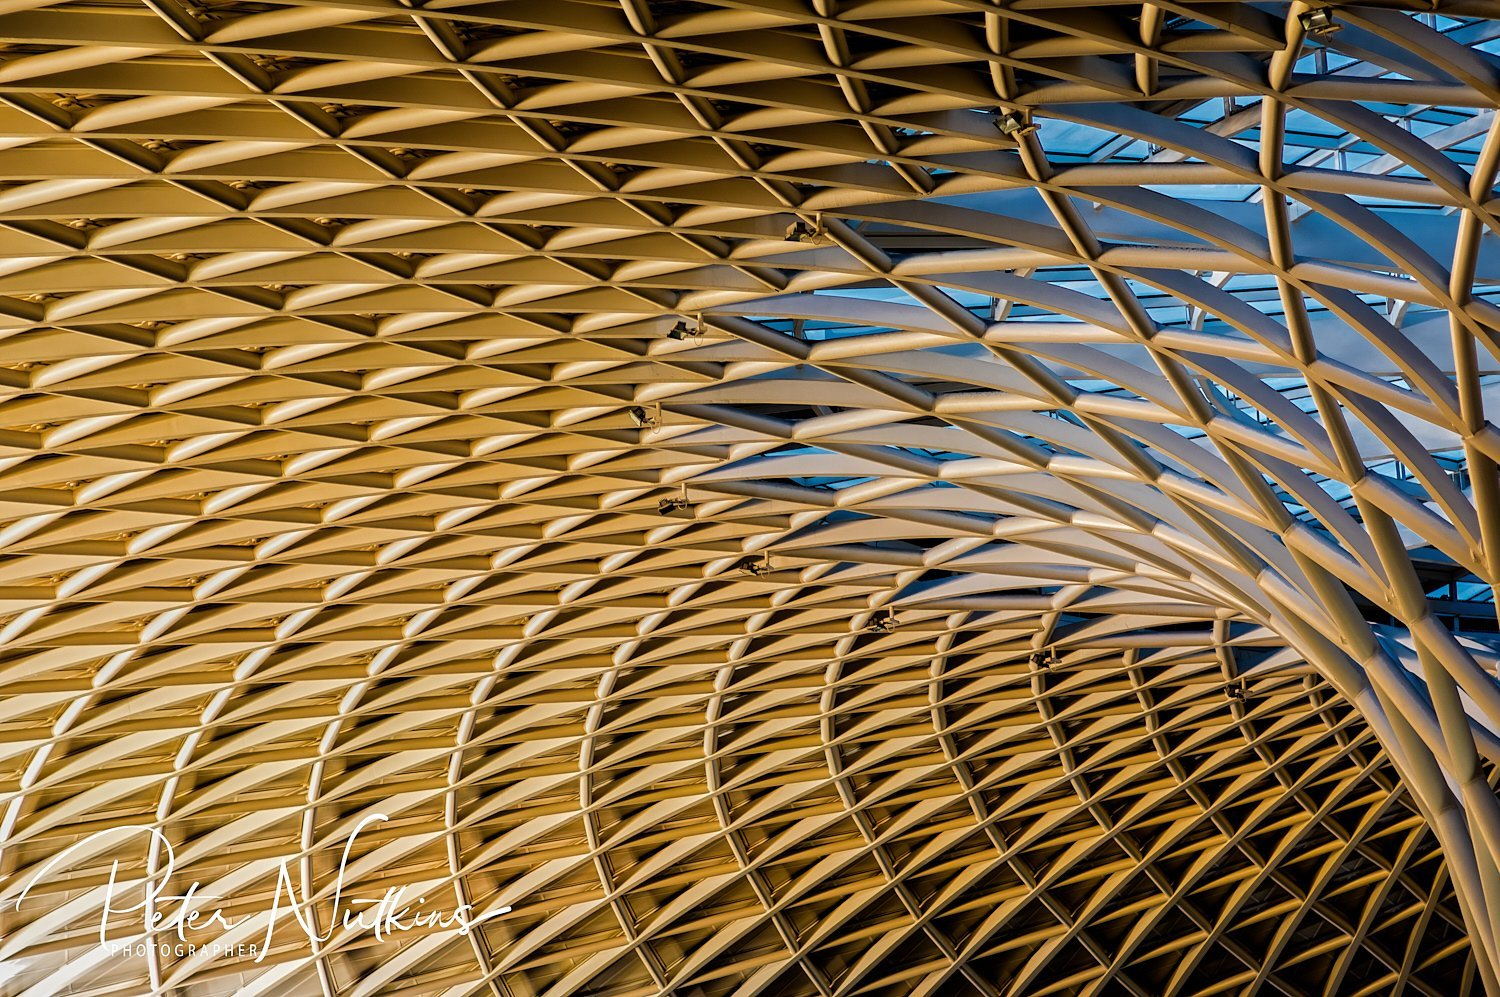 The roof of King's Cross Station in London